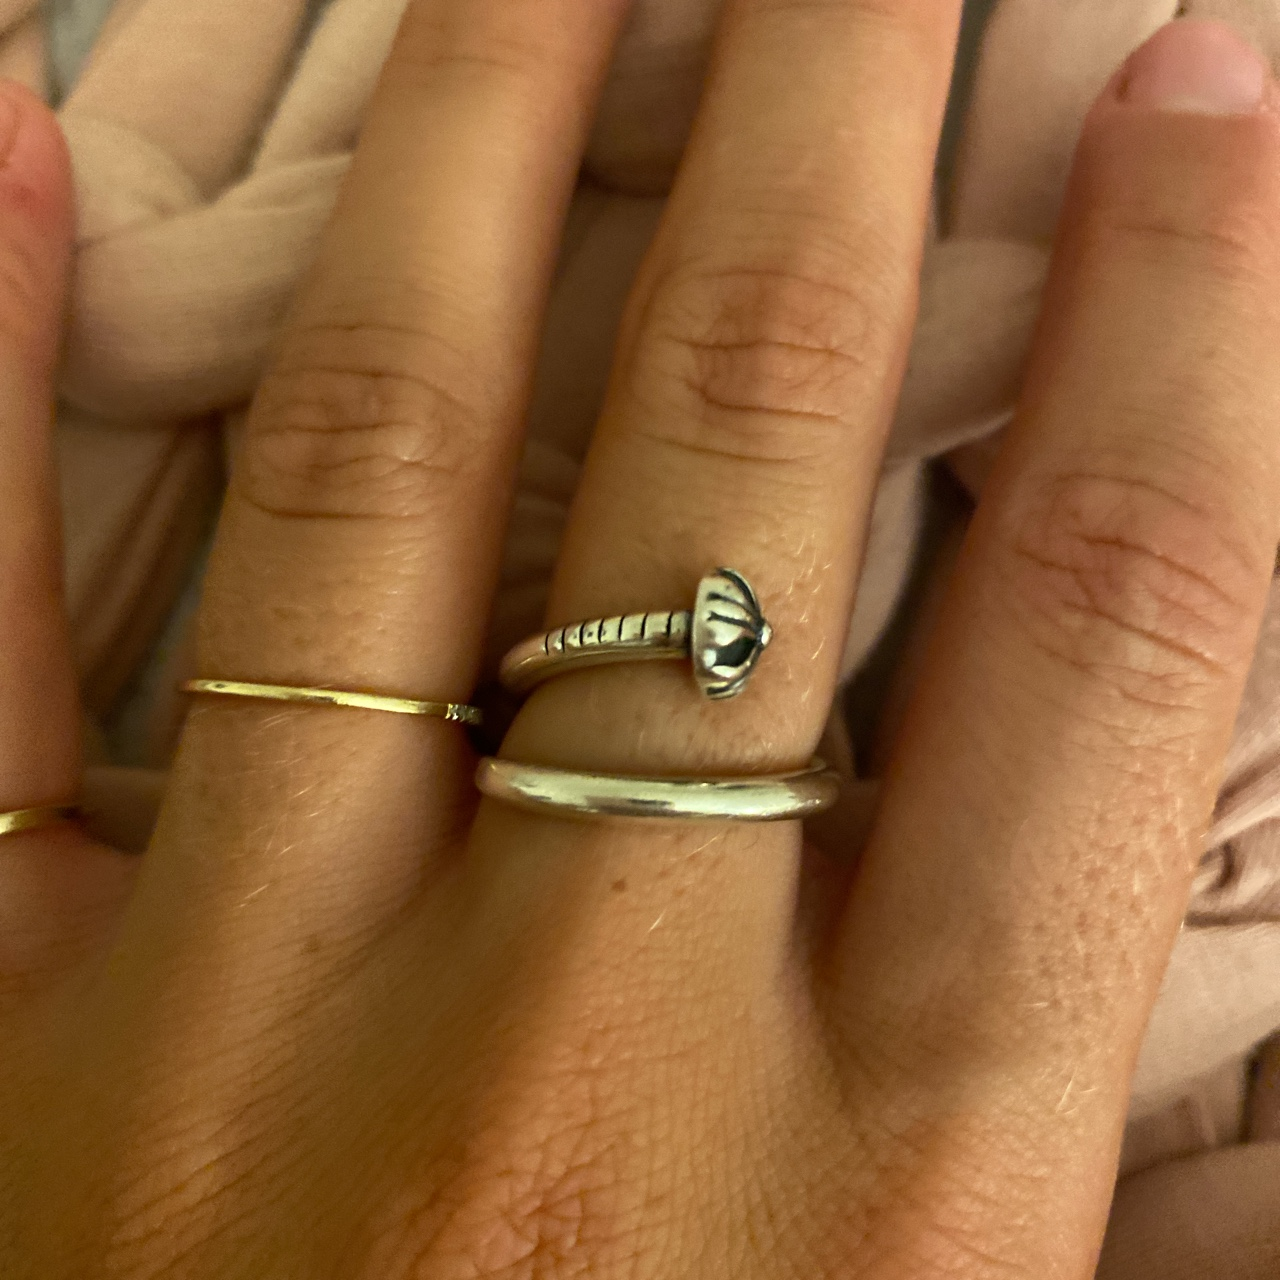 Product Image 1 - Chrome hearts nail ring. Bought